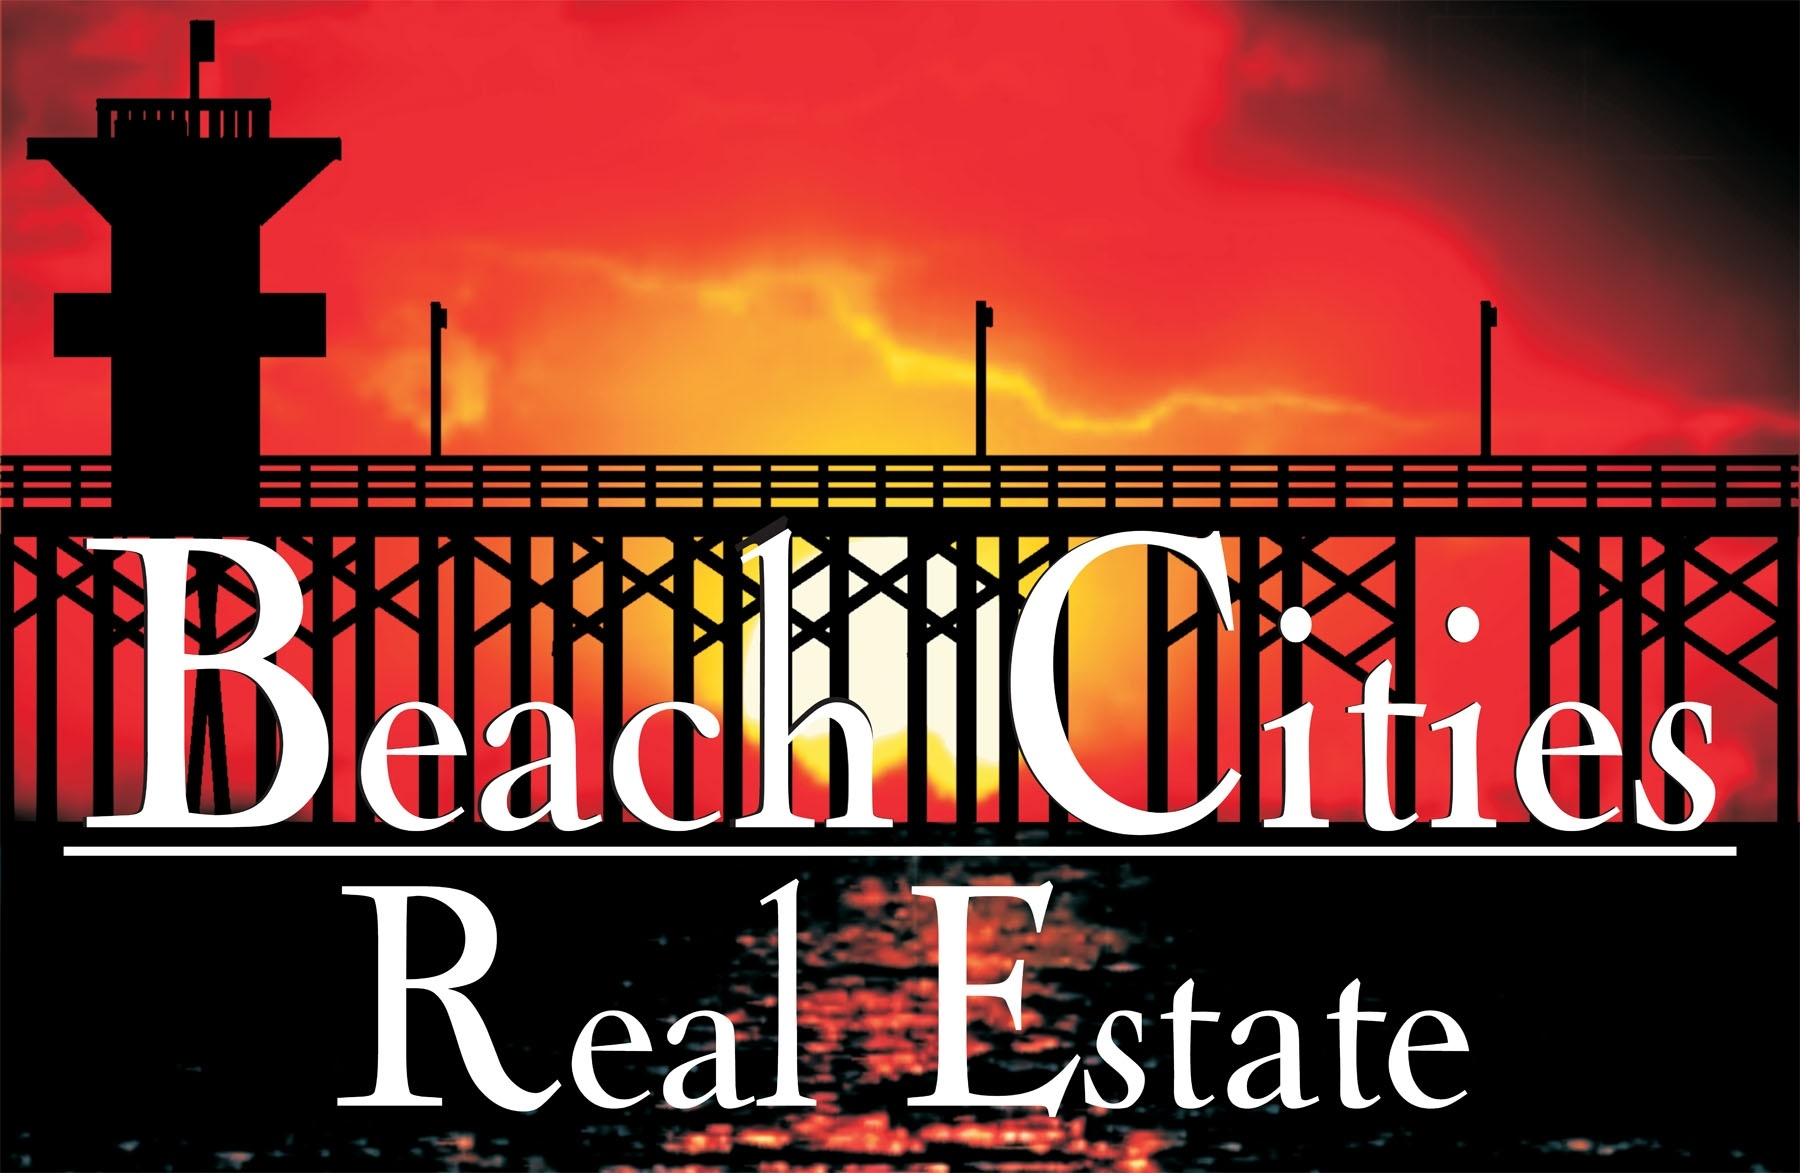 Beach Cities Real Estate - Property Evaluation